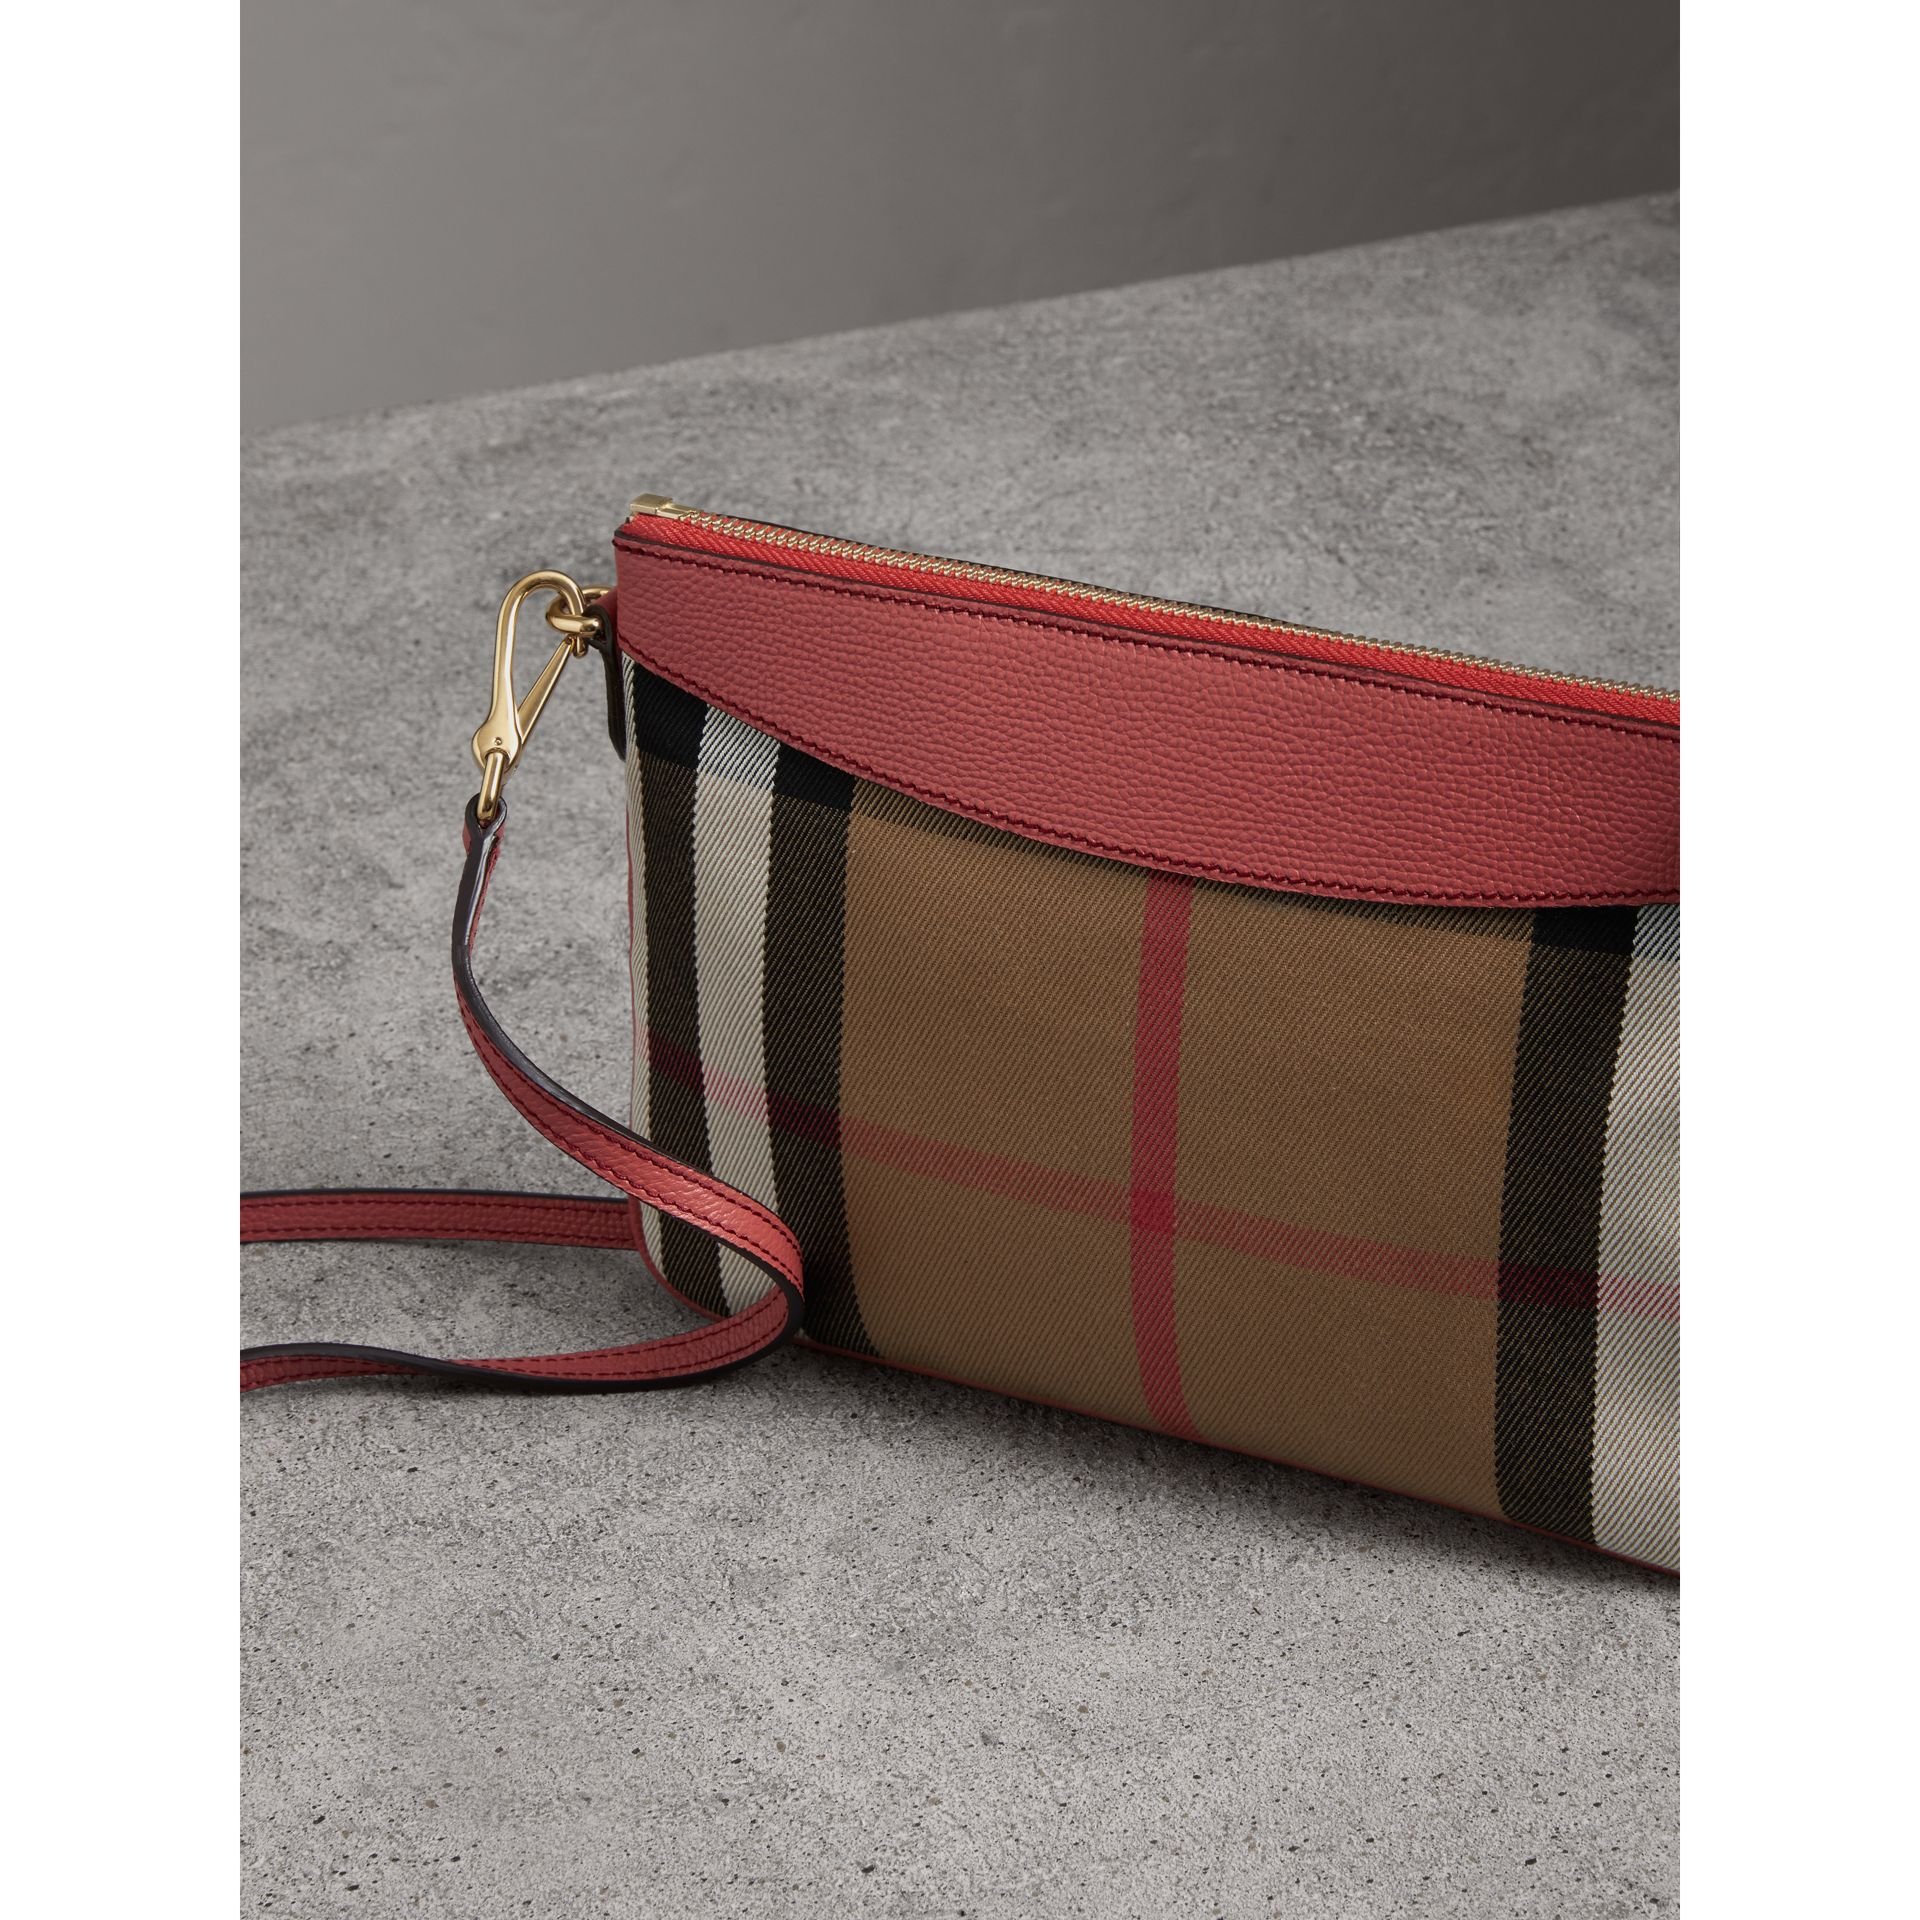 House Check and Leather Clutch Bag in Cinnamon Red - Women | Burberry United Kingdom - gallery image 4